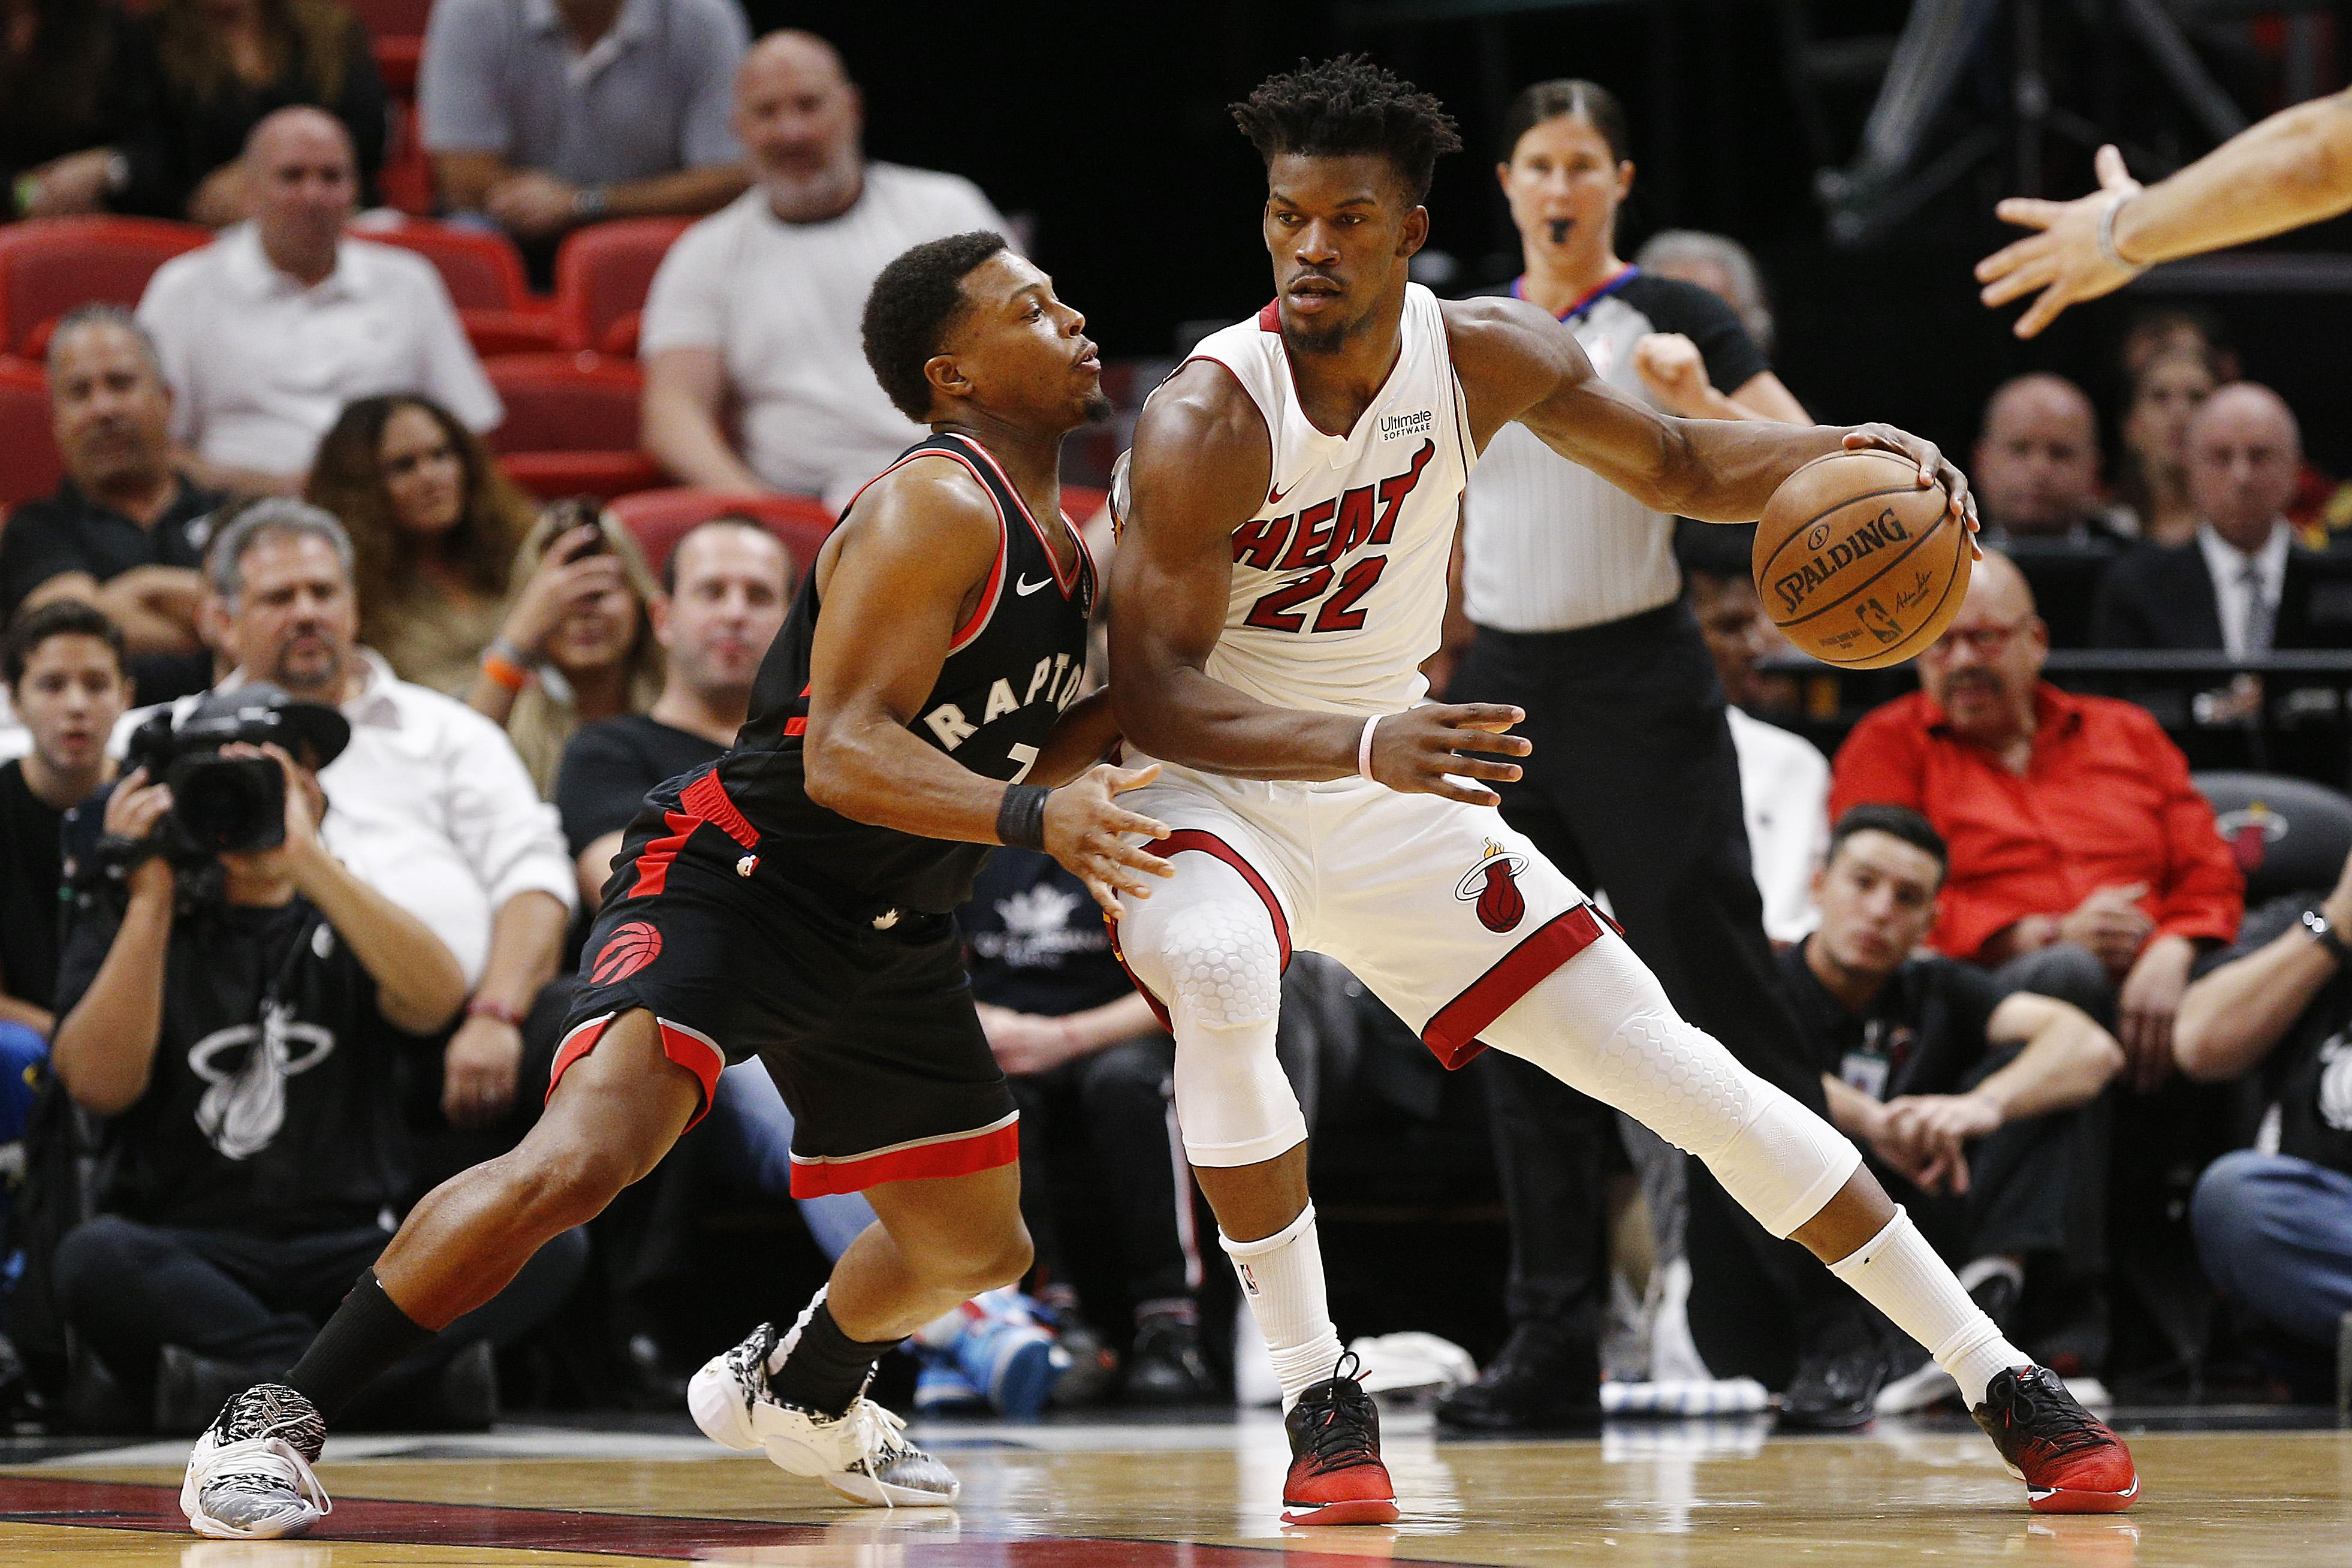 Jimmy Butler #22 of the Miami Heat drives to the basket against Kyle Lowry #7 of the Toronto Raptors